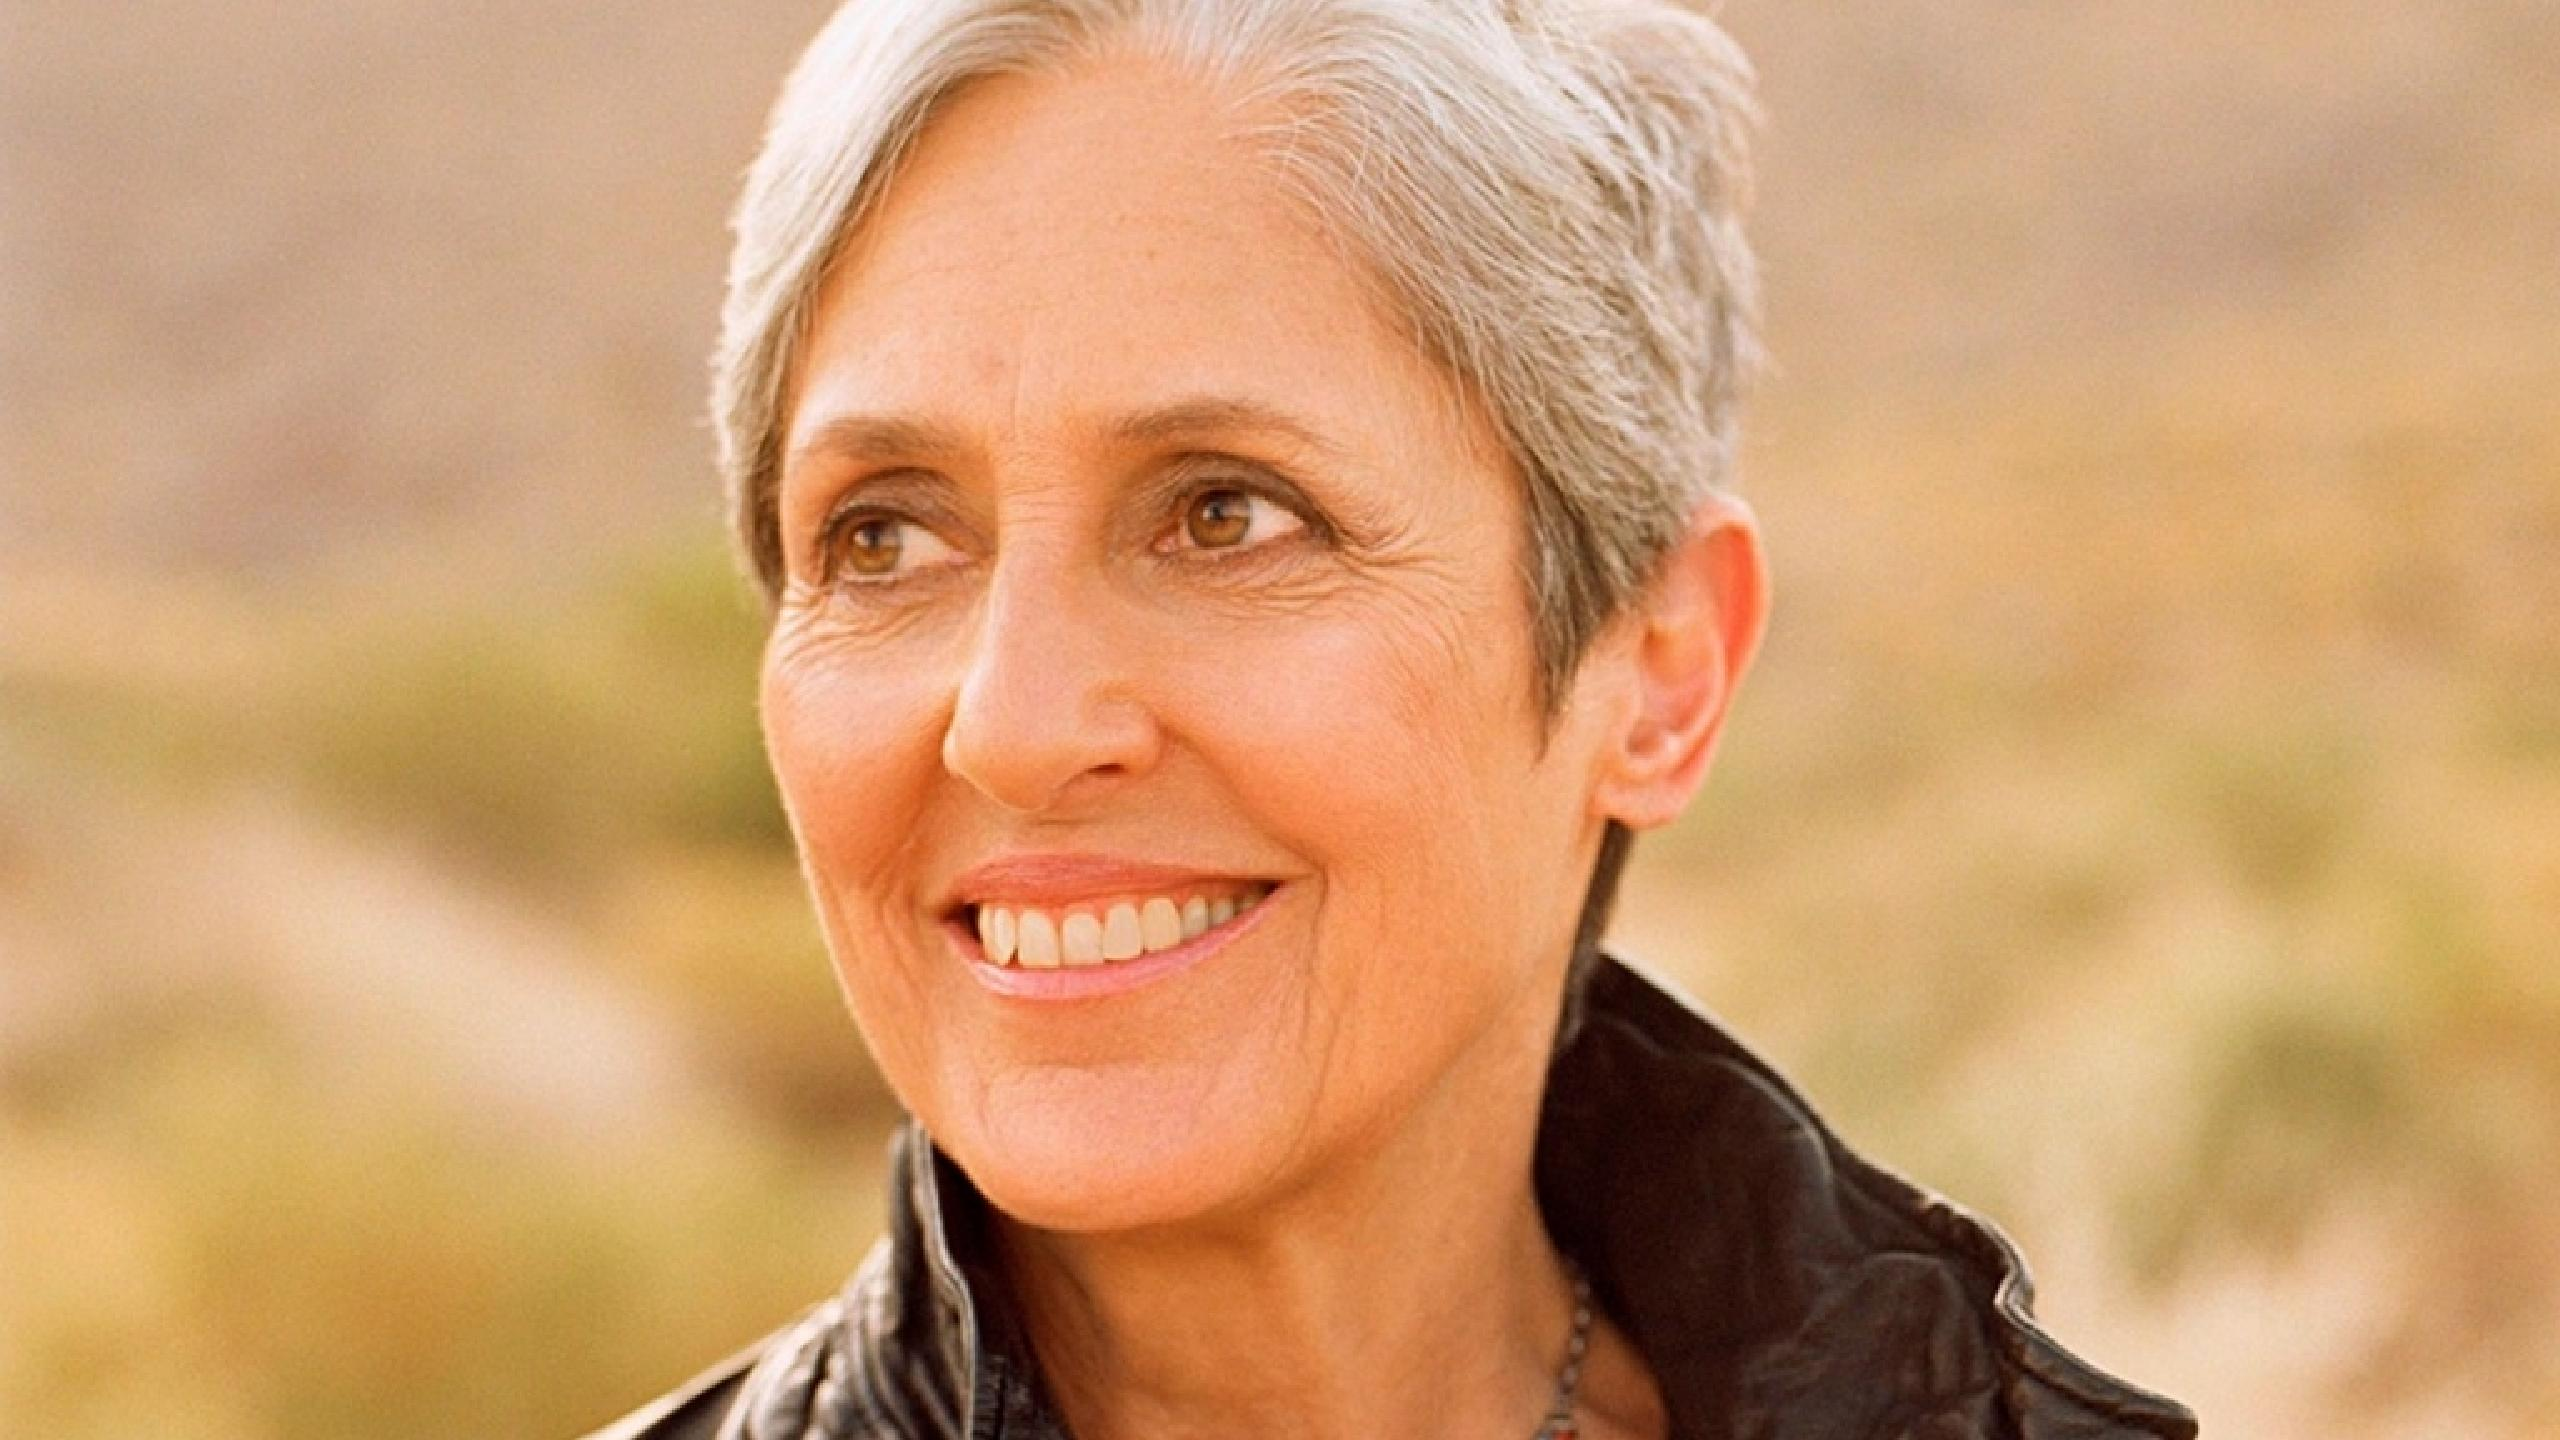 Joan Baez Tour Dates 2021 2022 Joan Baez Tickets And Concerts Wegow United States